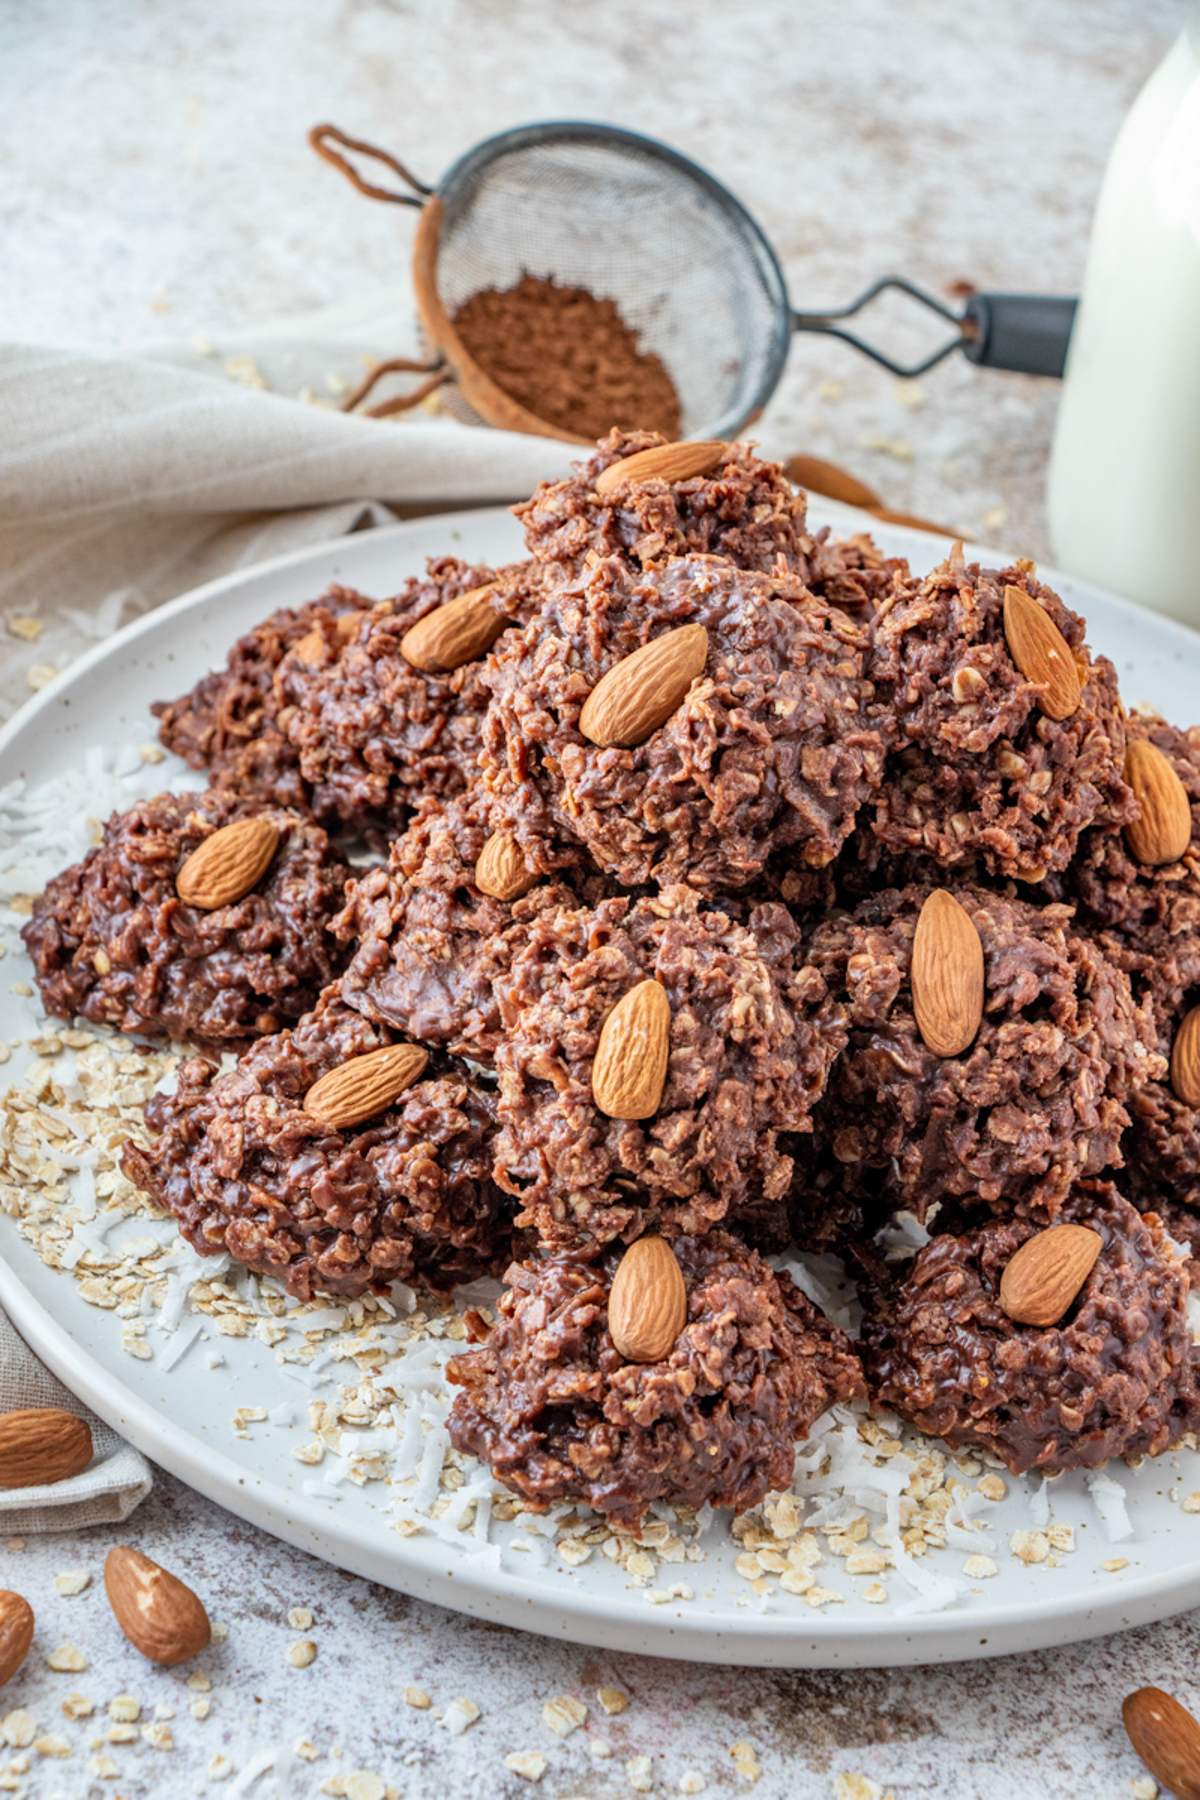 Plate full of No Bake Almond Joy Cookies topped with almonds